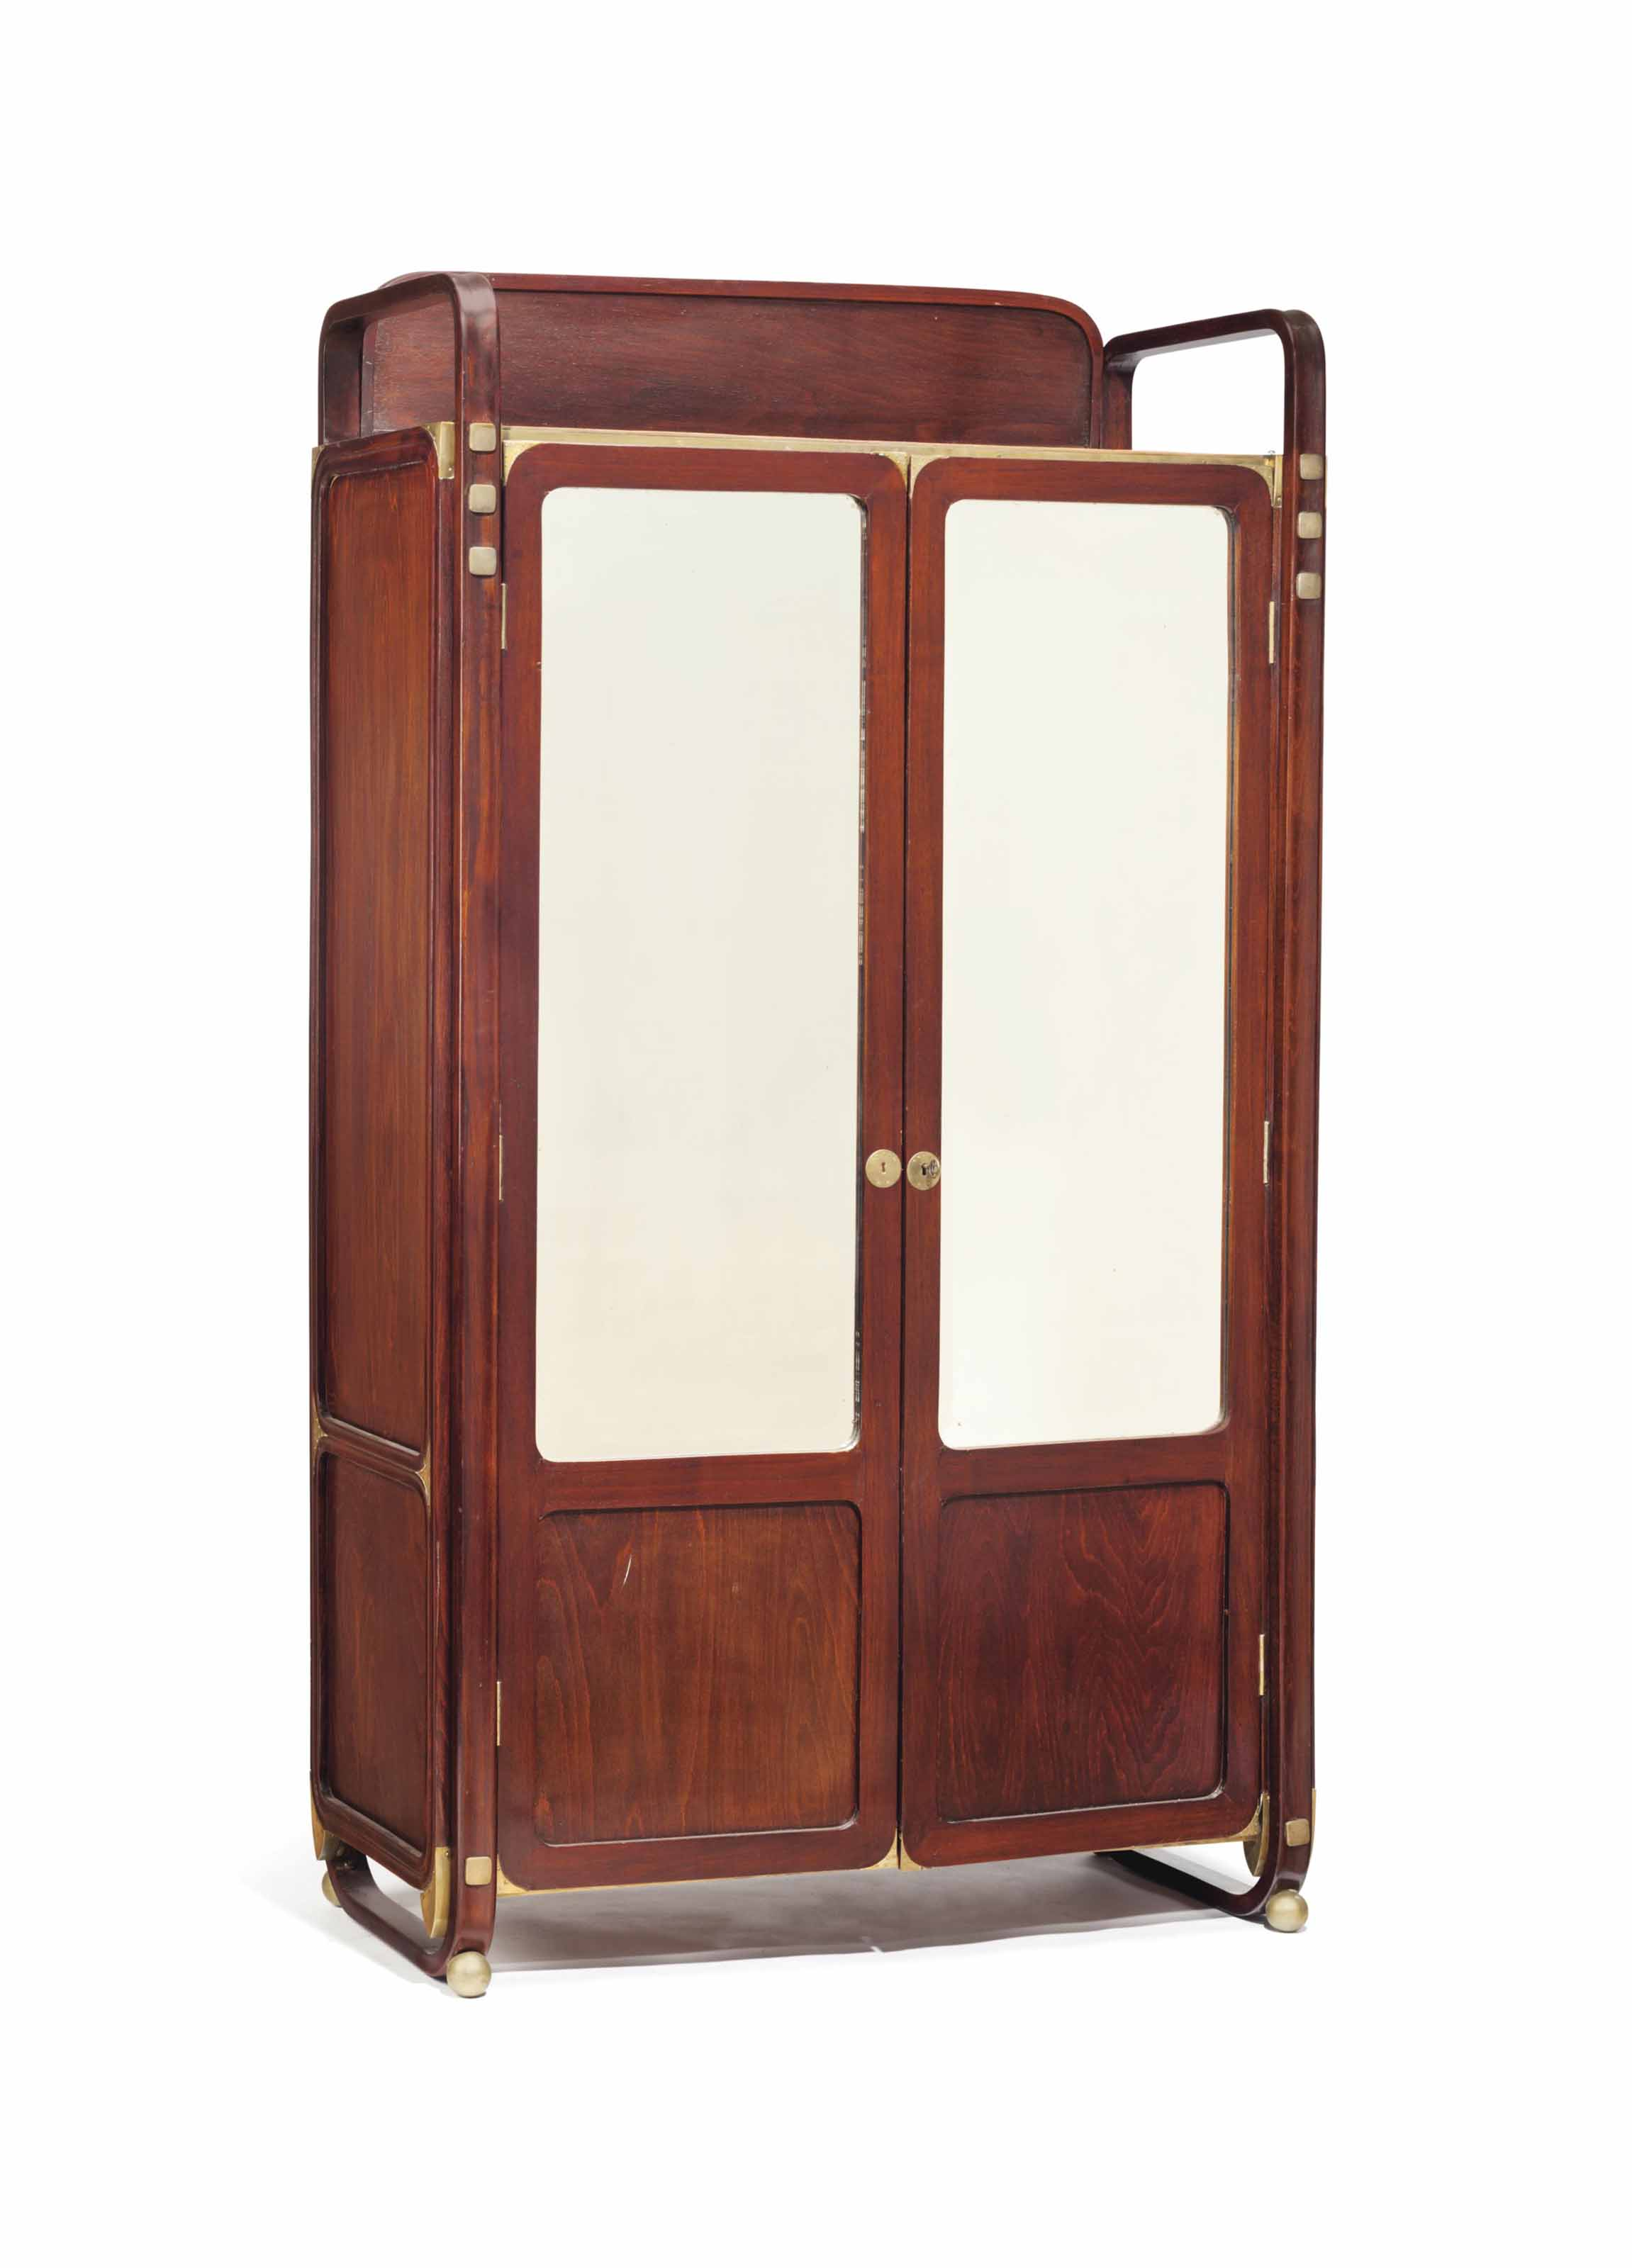 AN AUSTRIAN BRONZE-MOUNTED AND STAINED BEECH ARMOIRE